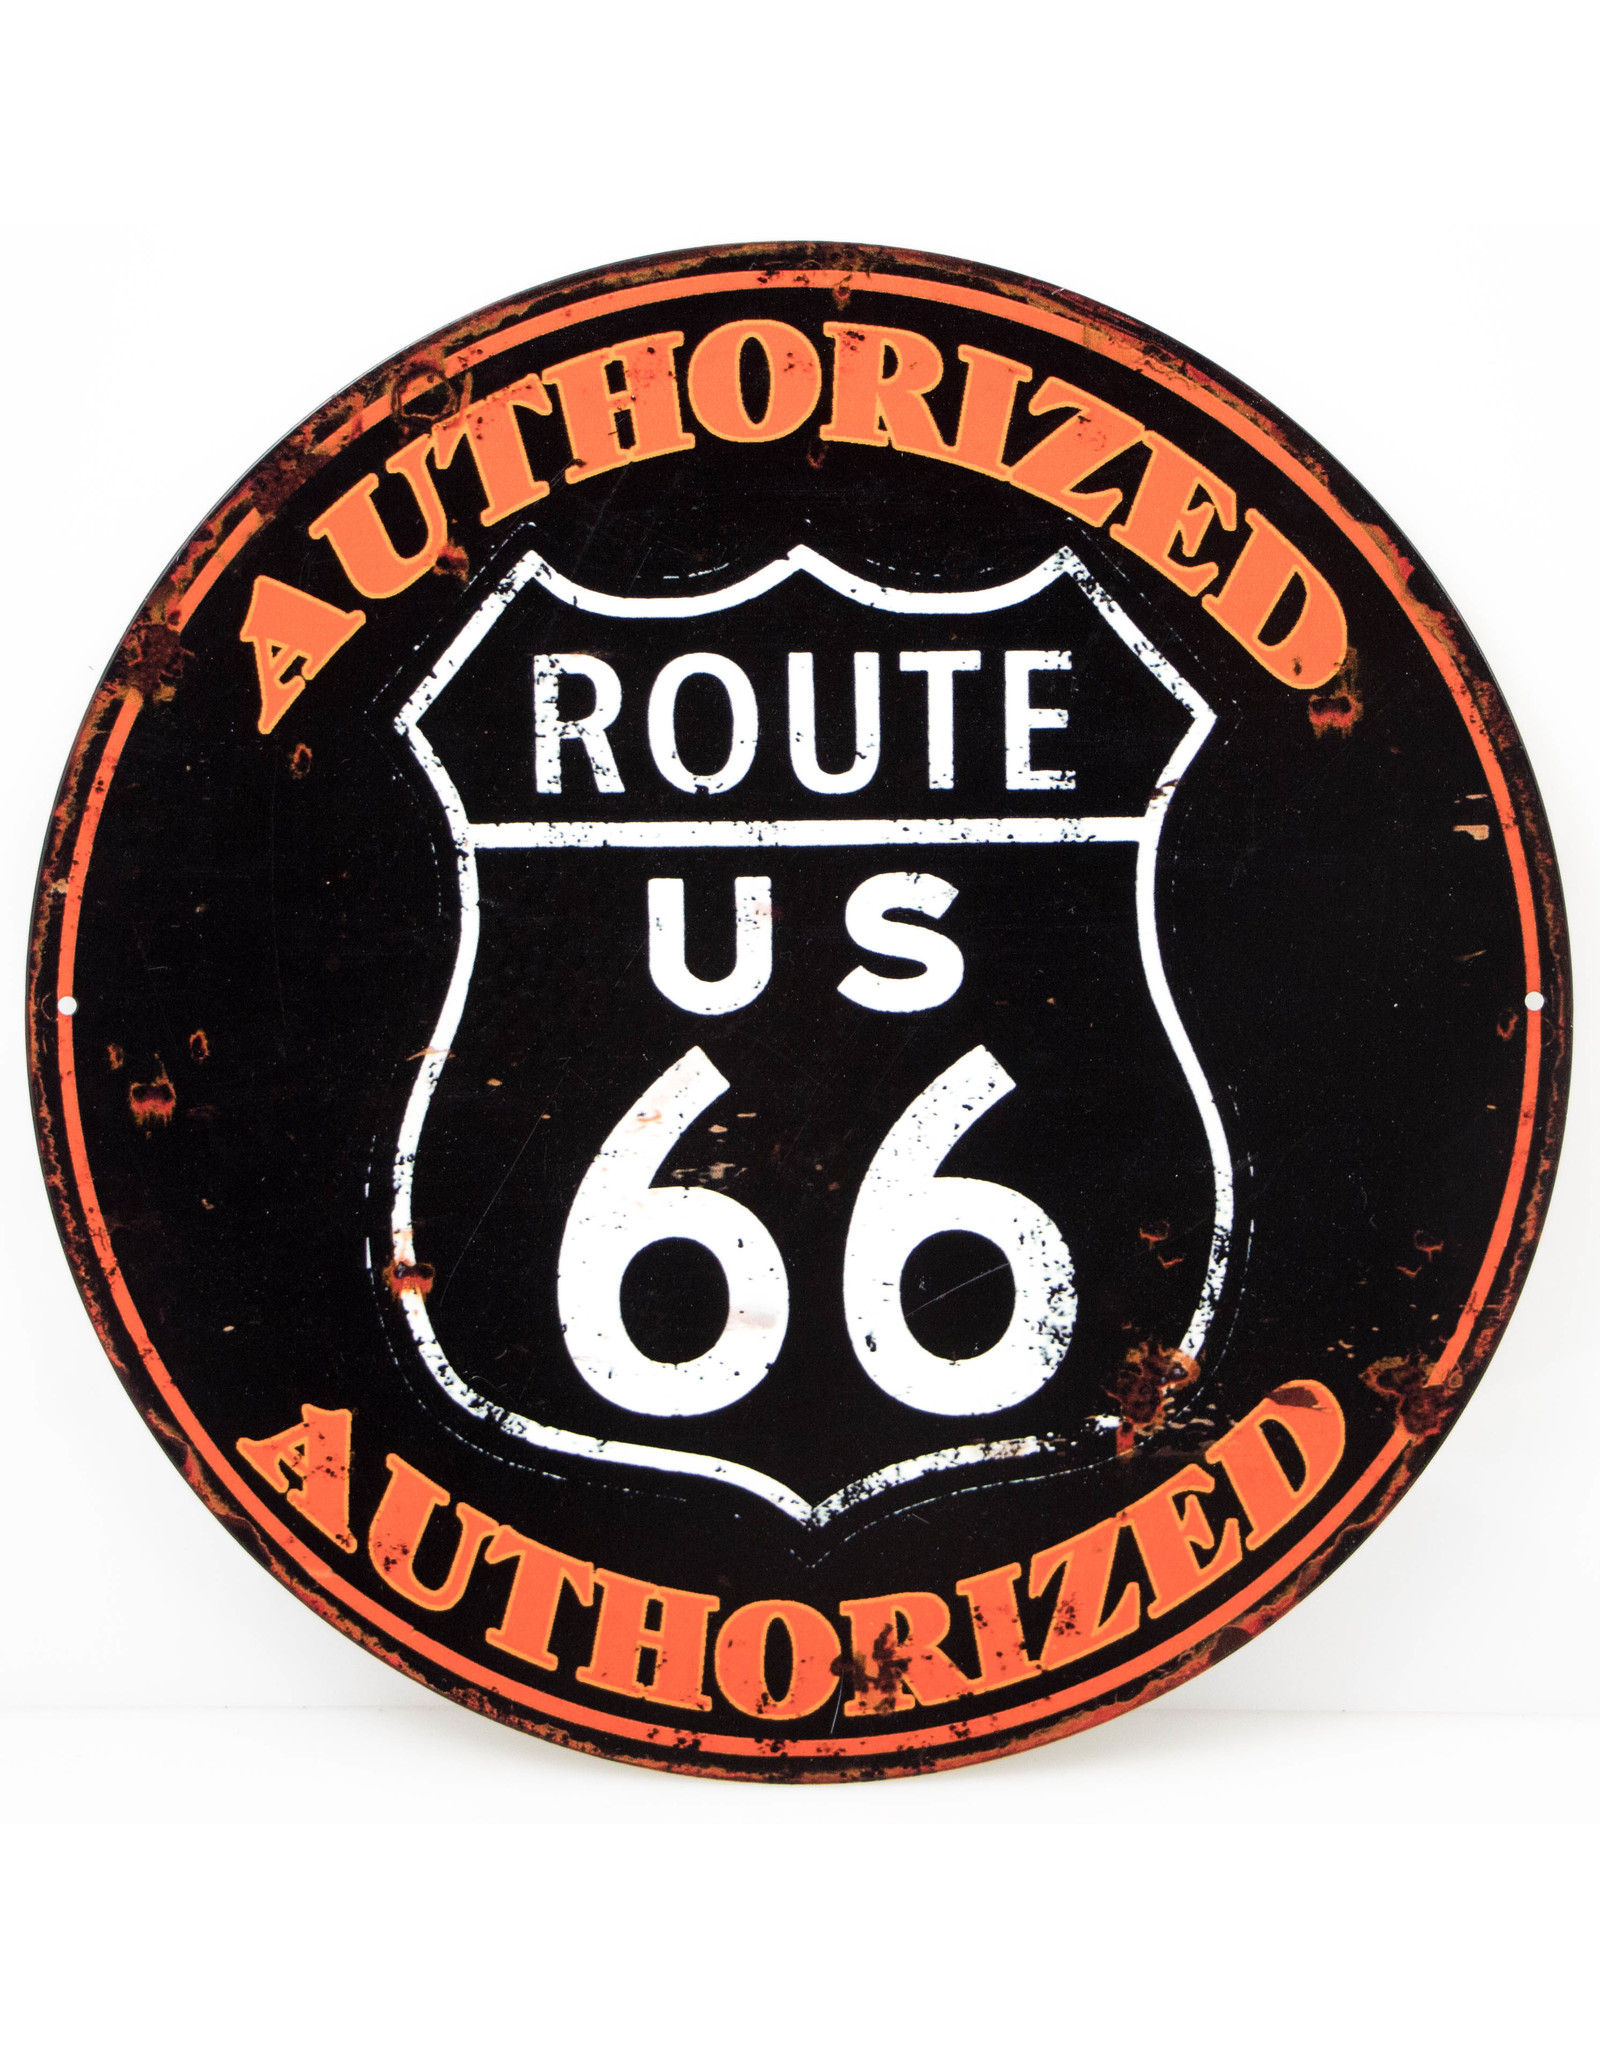 Route 66 (Round Black/Red)